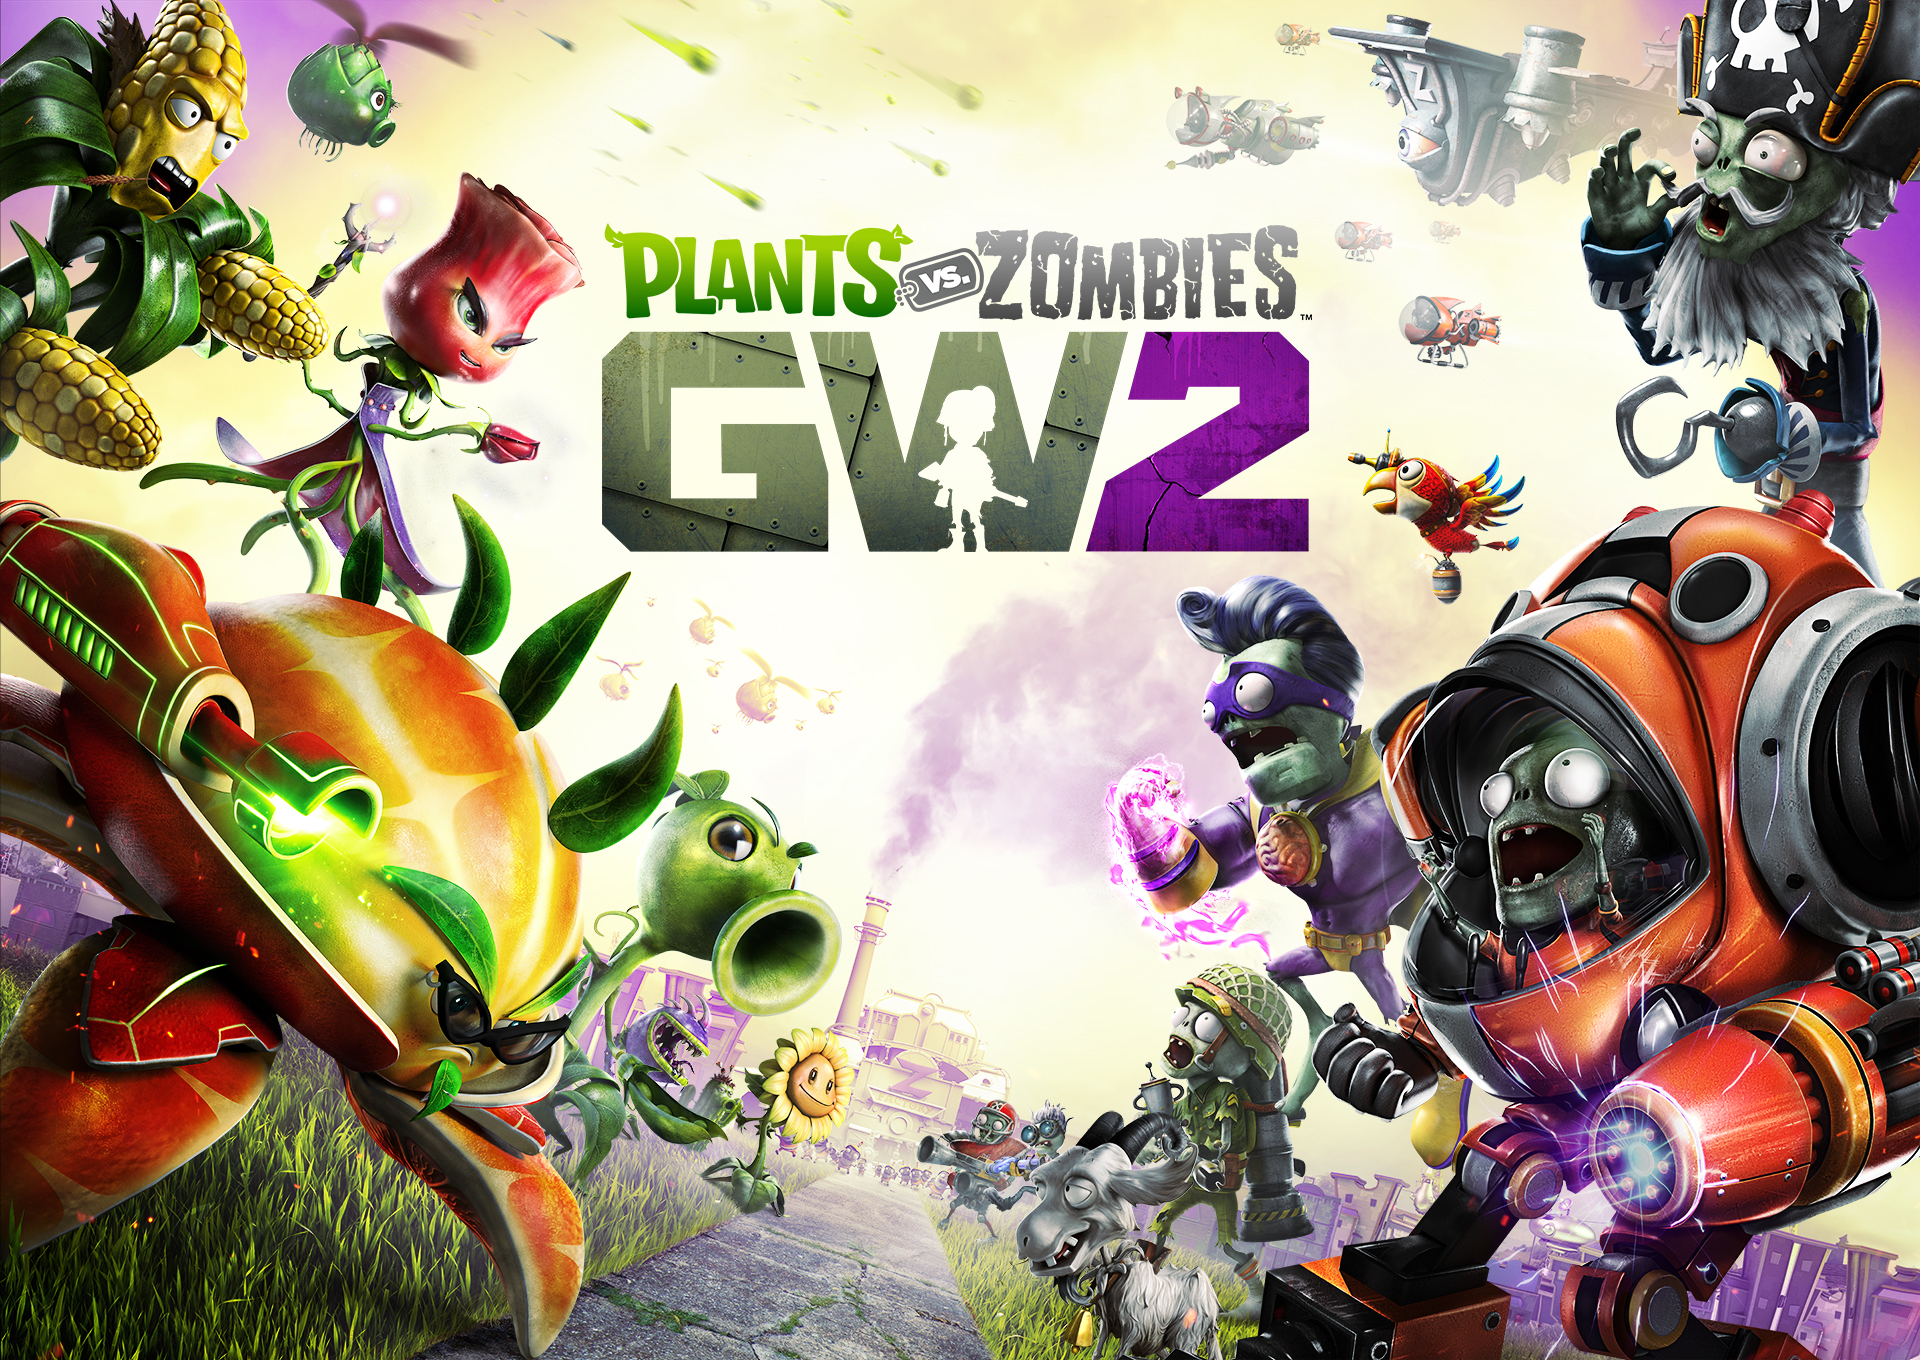 Plants Vs Zombies Gw2 Consola Y Tablero